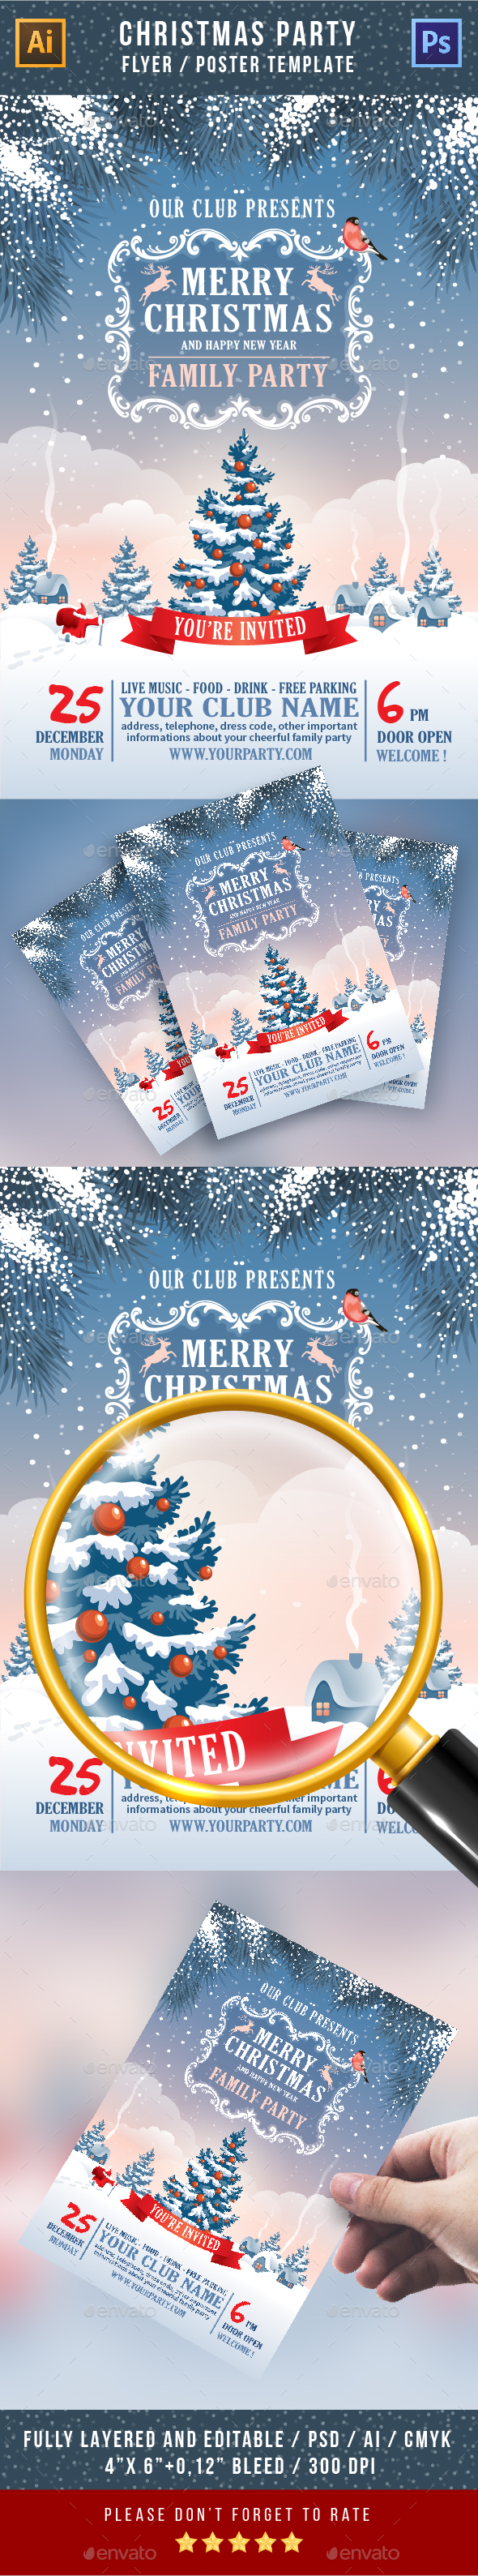 Christmas Party Flyer, Poster Or Invitation - Clubs & Parties Events